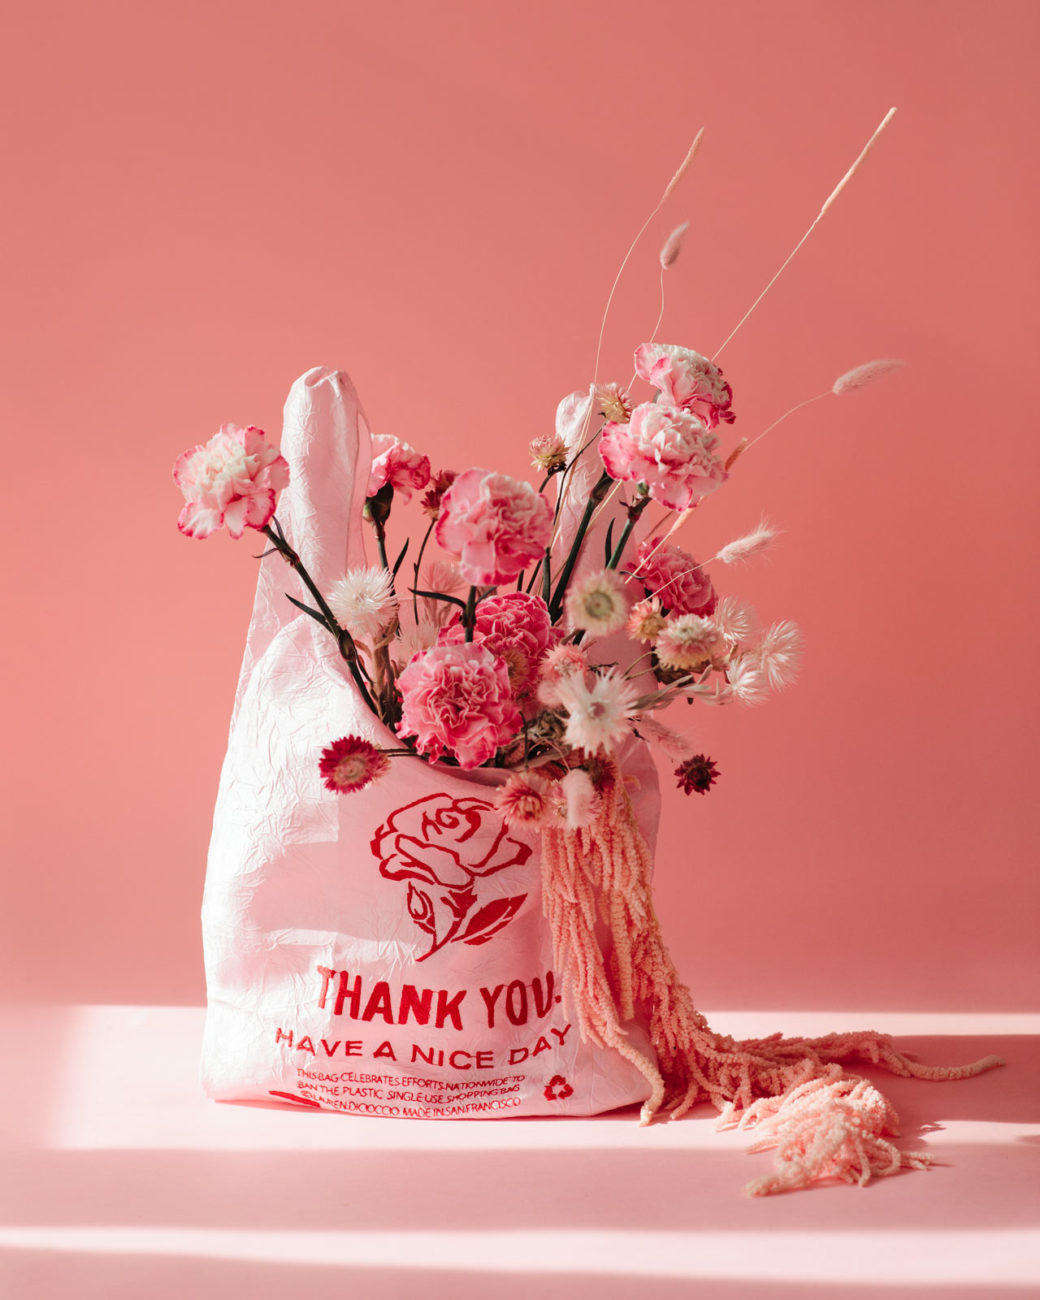 Thank you NYC tote shopping bag with floral installation and dried flowers on a pink background in Queens New York